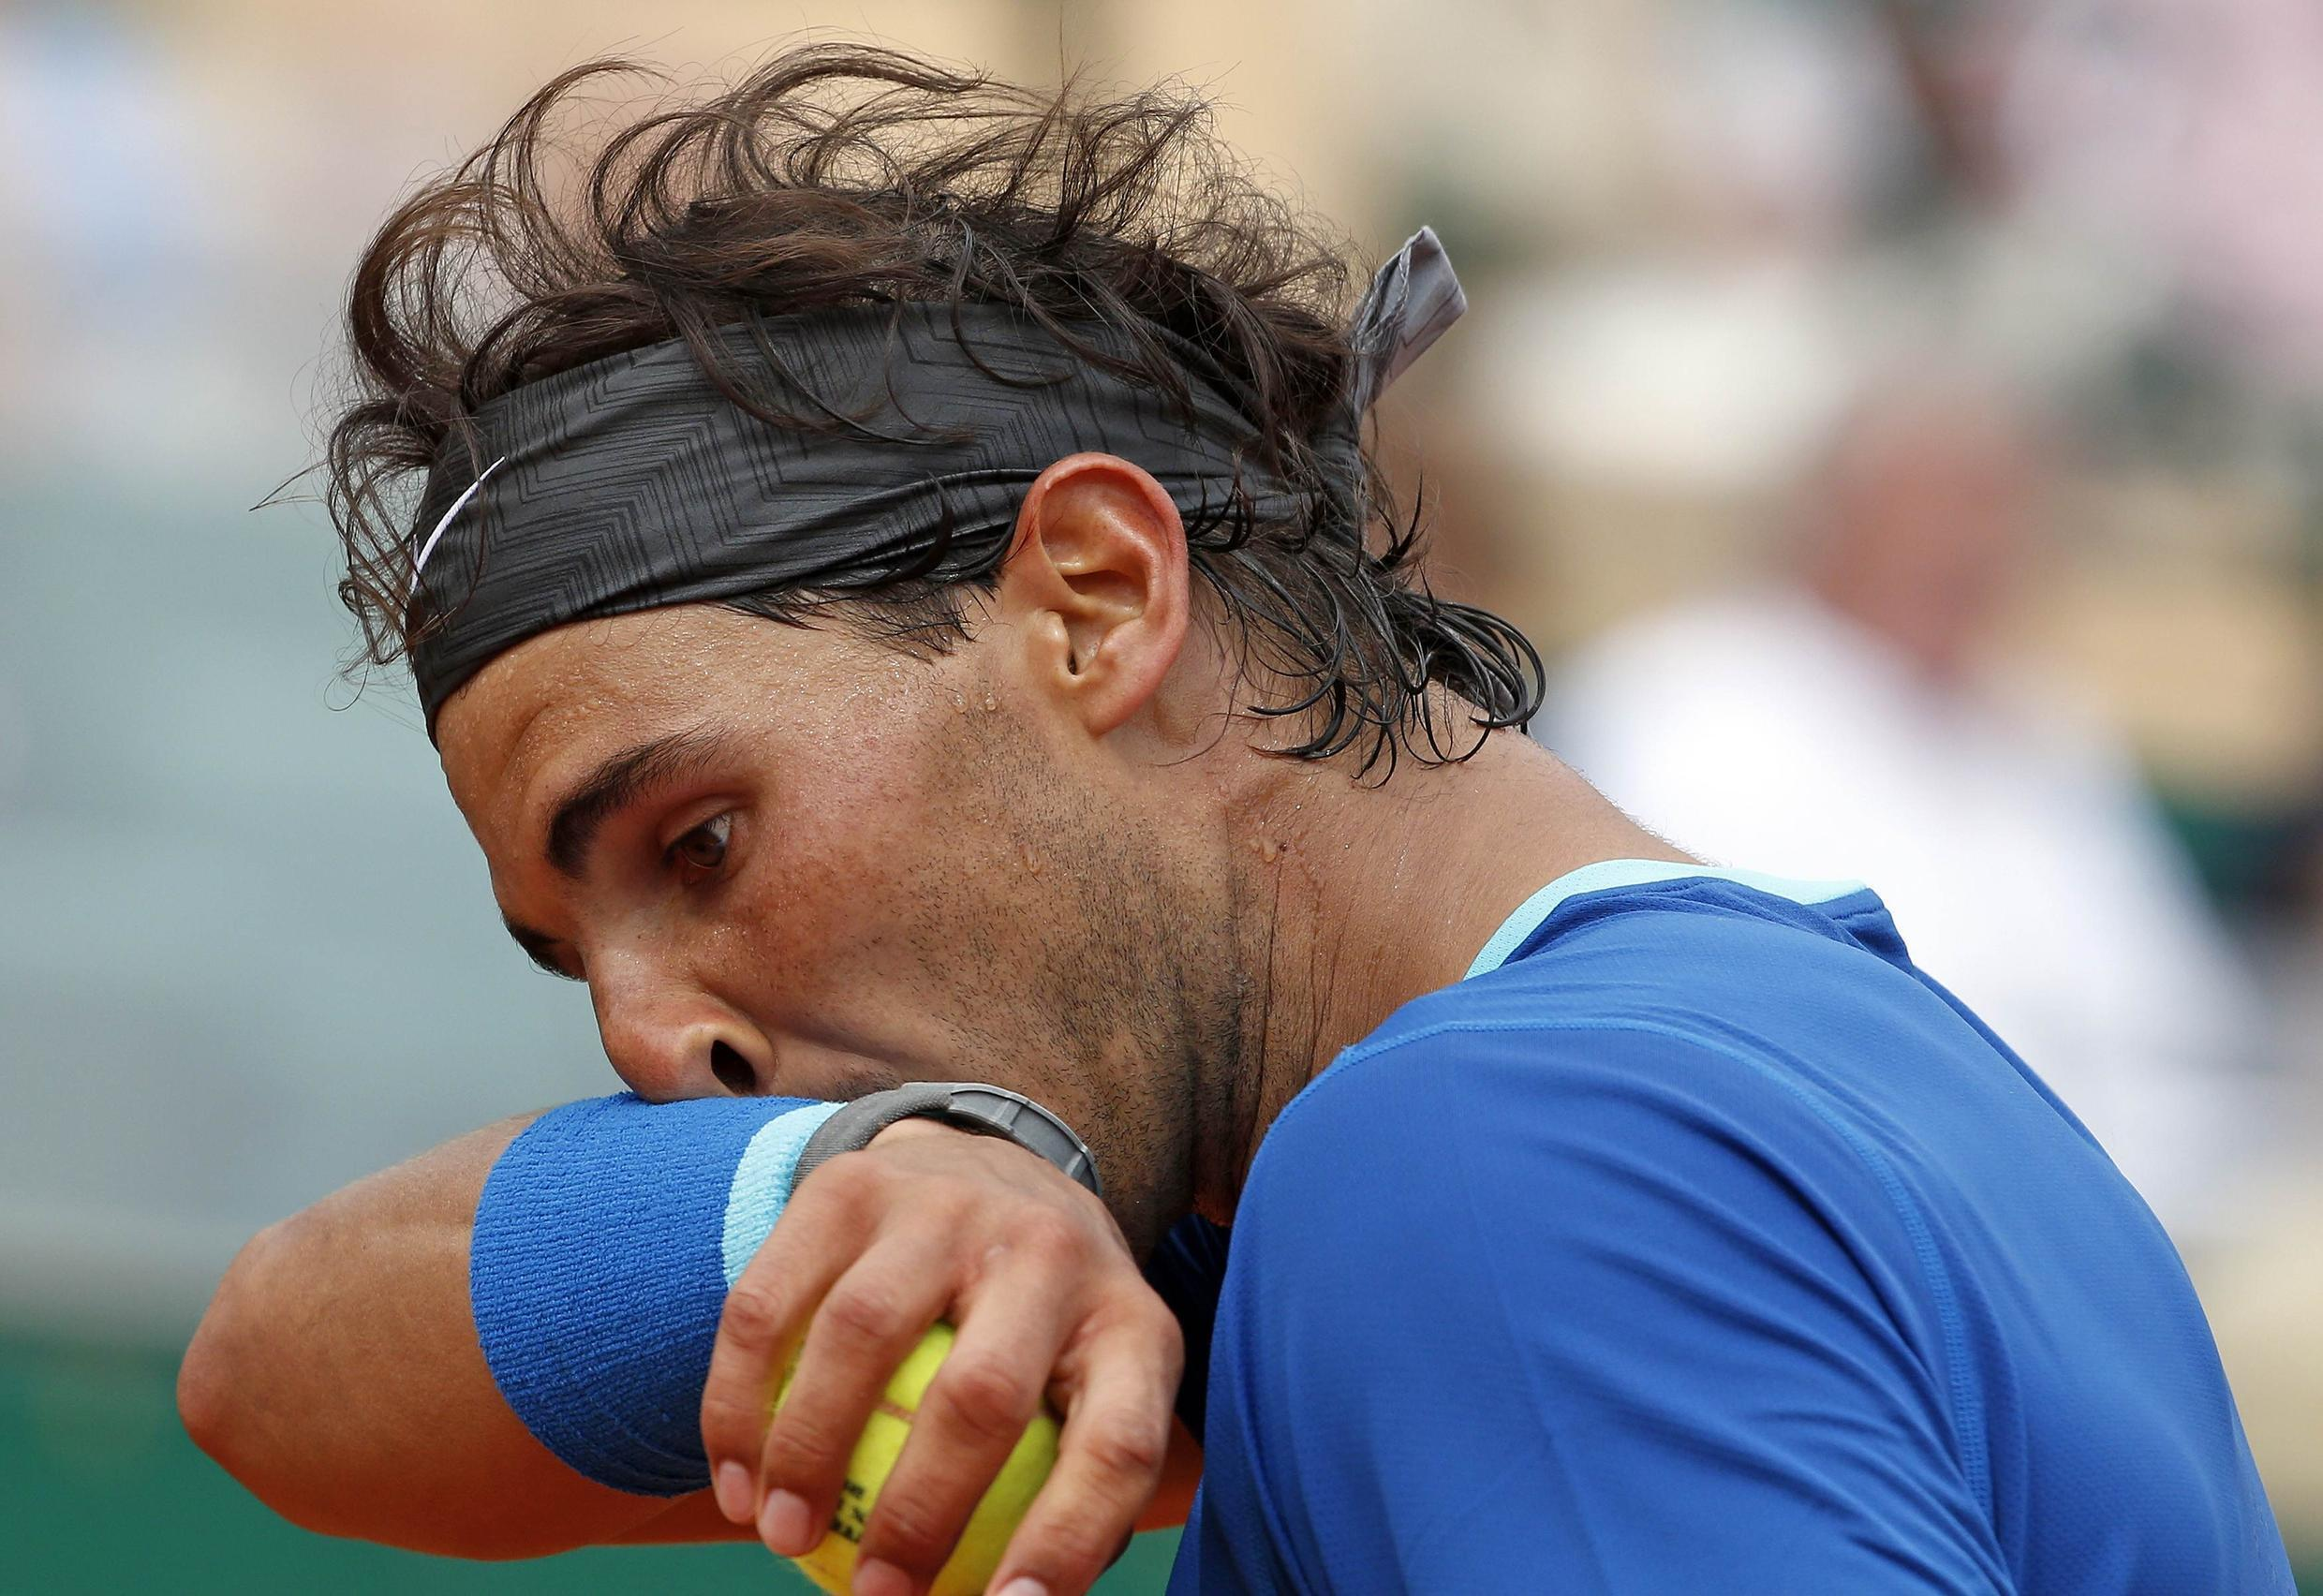 Rafael Nadal will seek a 10th title at the French Open in Paris